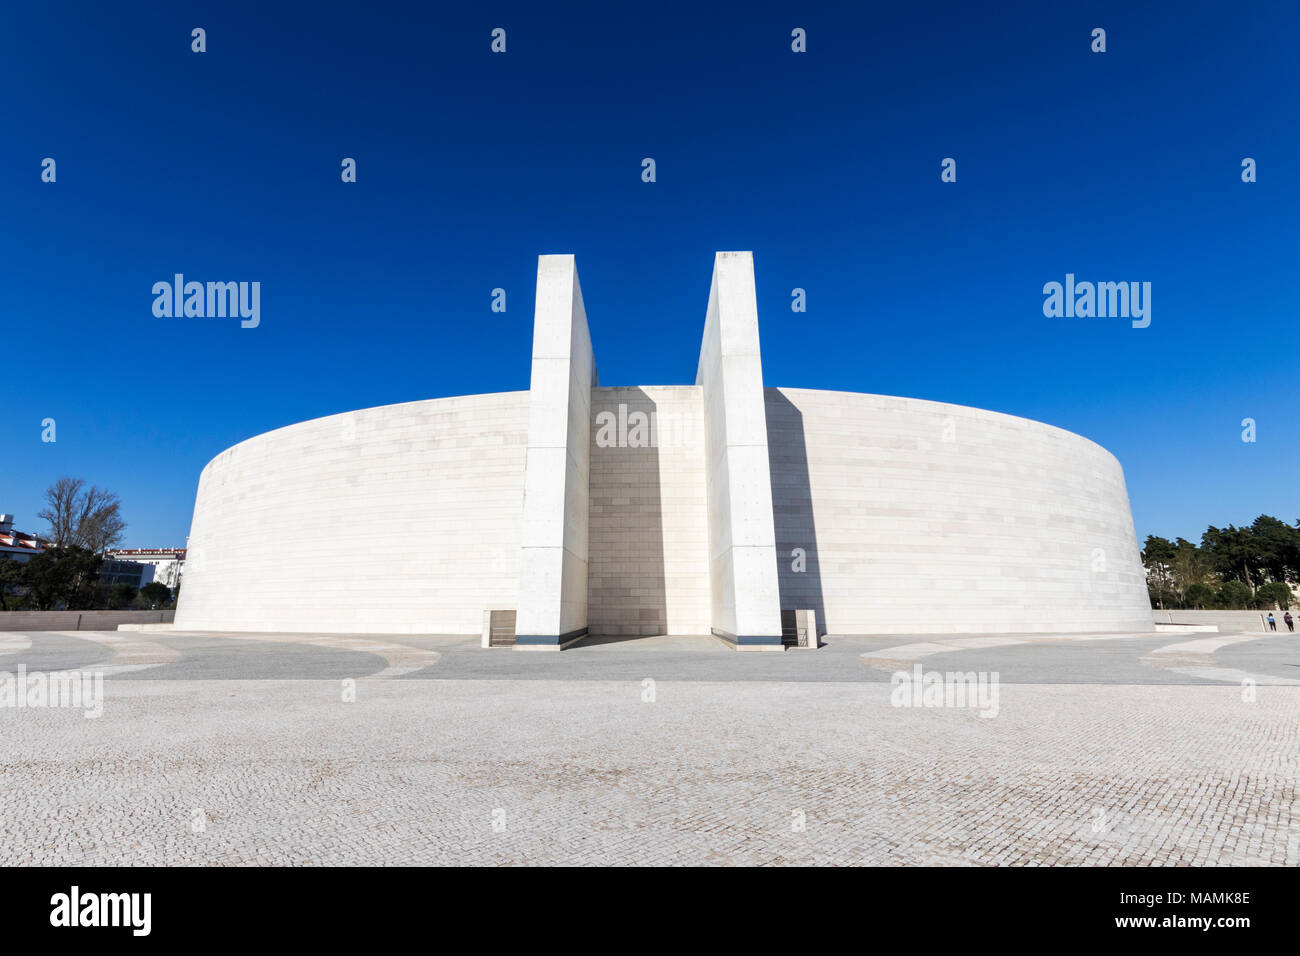 Church Holy Trinity Fatima Portugal Stock Photos Amp Church Holy Trinity Fatima Portugal Stock